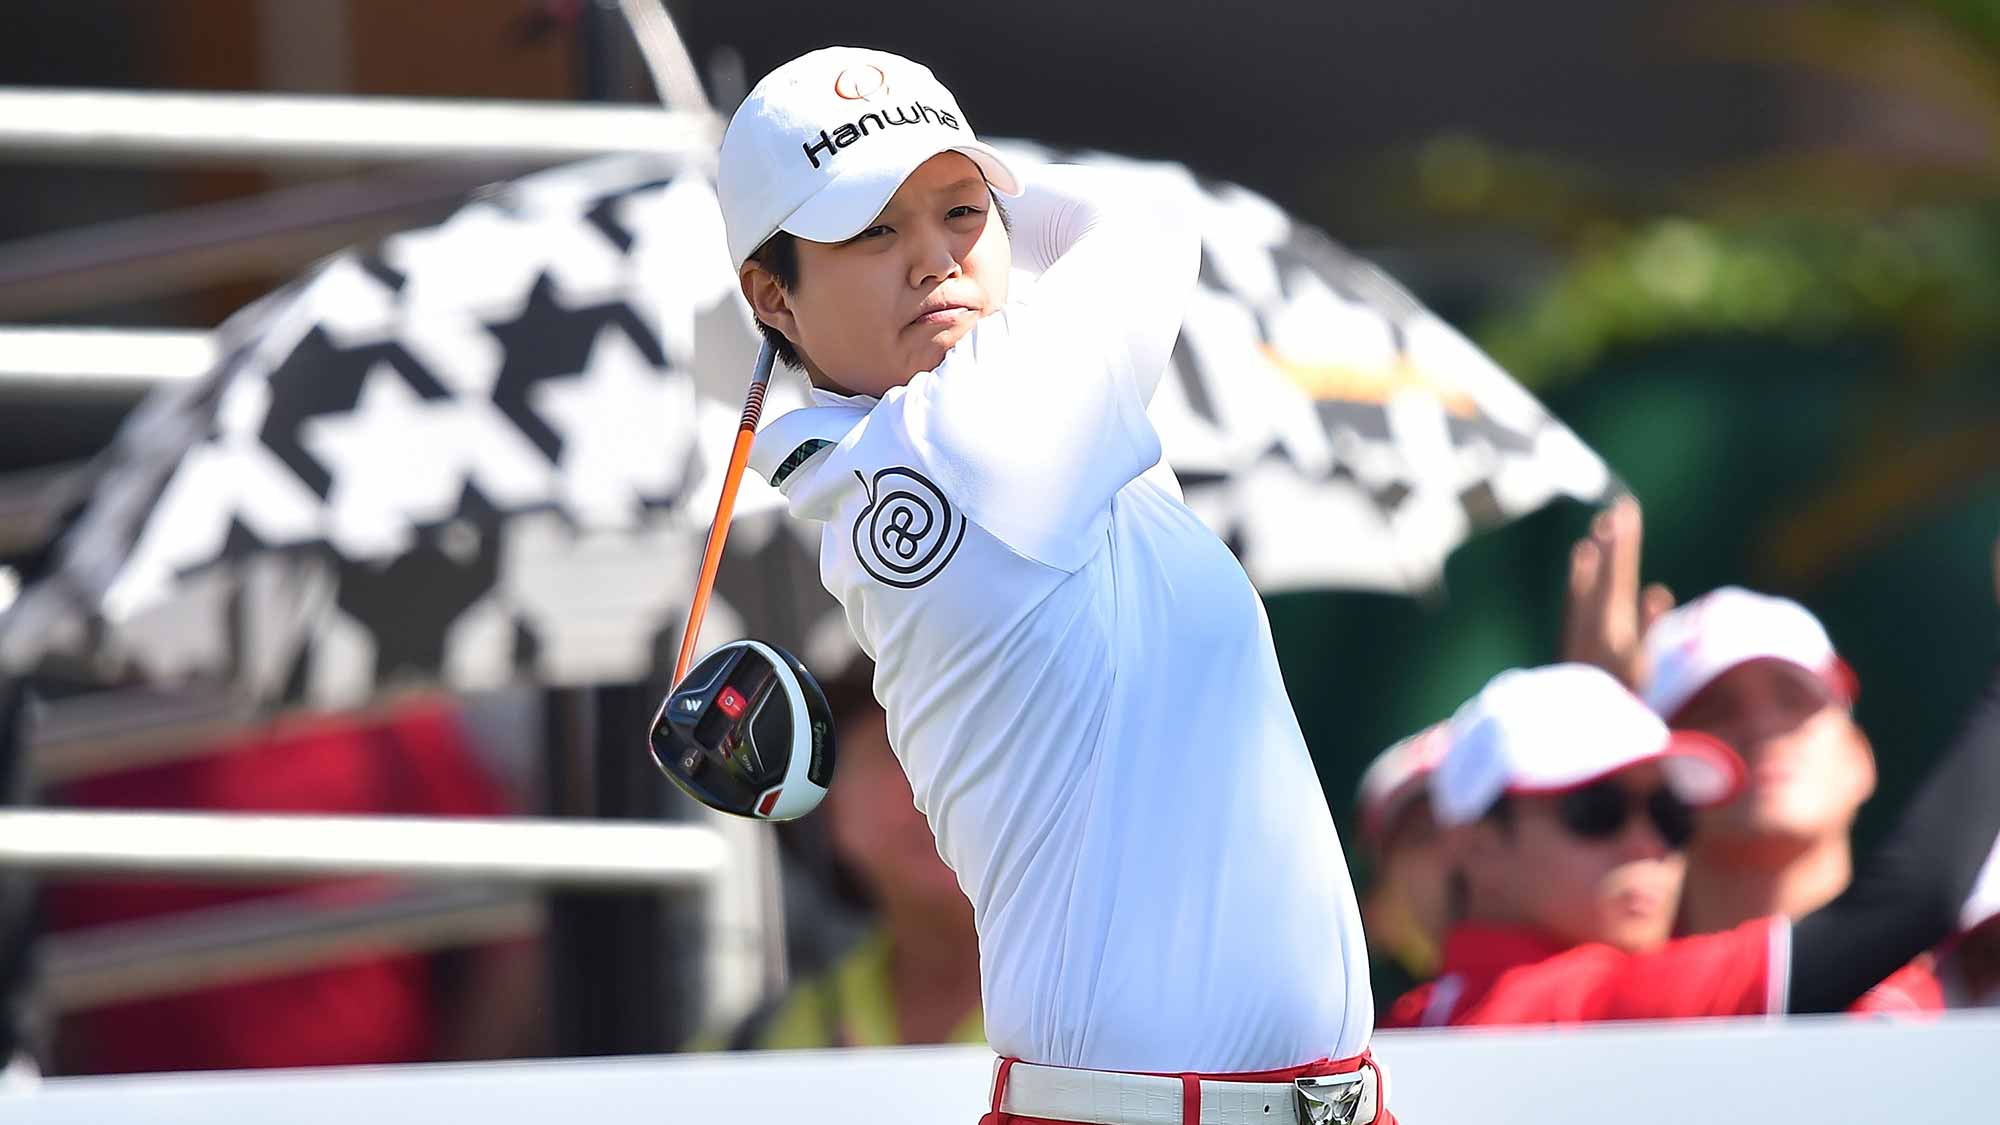 Haru Nomura of Japan plays a shot during day two of the 2016 Honda LPGA Thailand at Siam Country Club